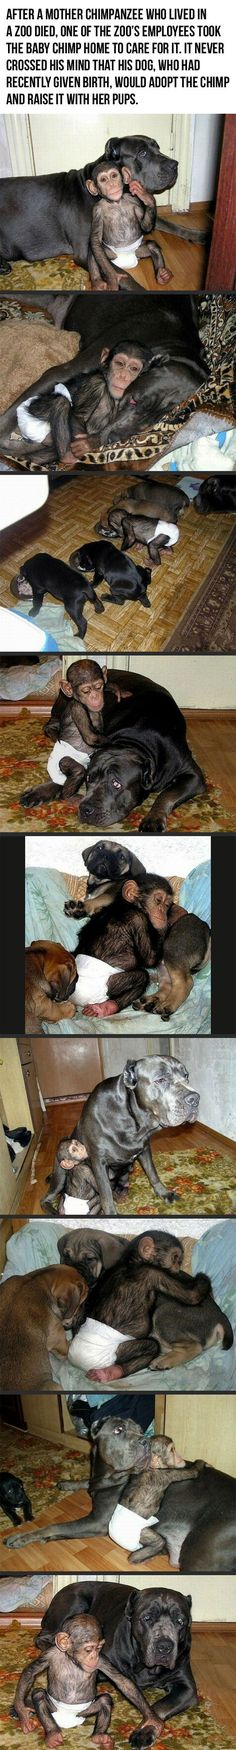 Dog adopts orphaned chimp